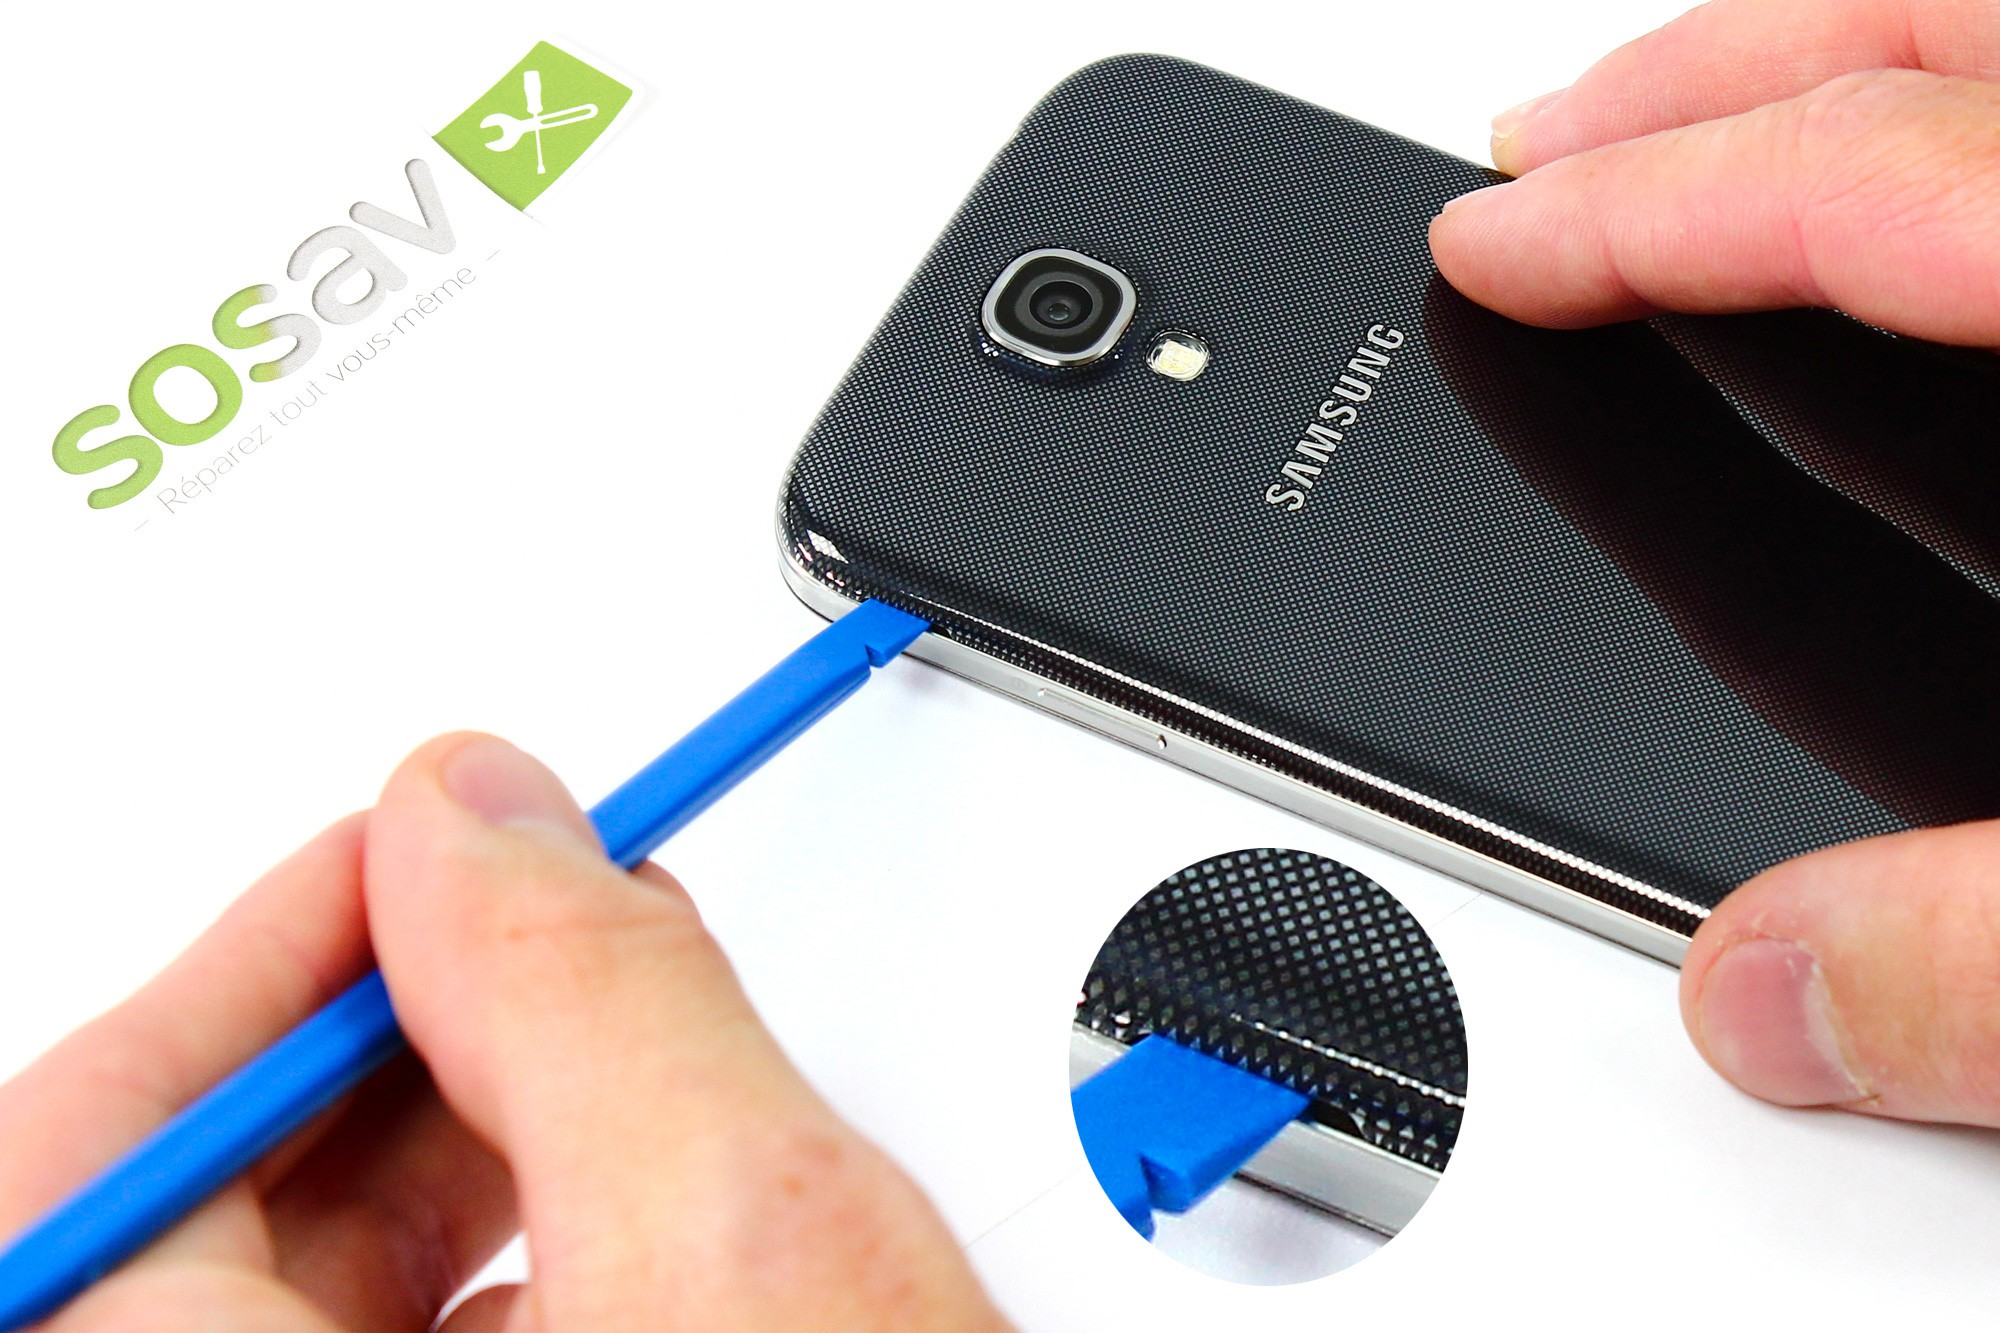 R paration connecteur de charge samsung galaxy s4 guide gratuit - Comment retirer de la rouille ...